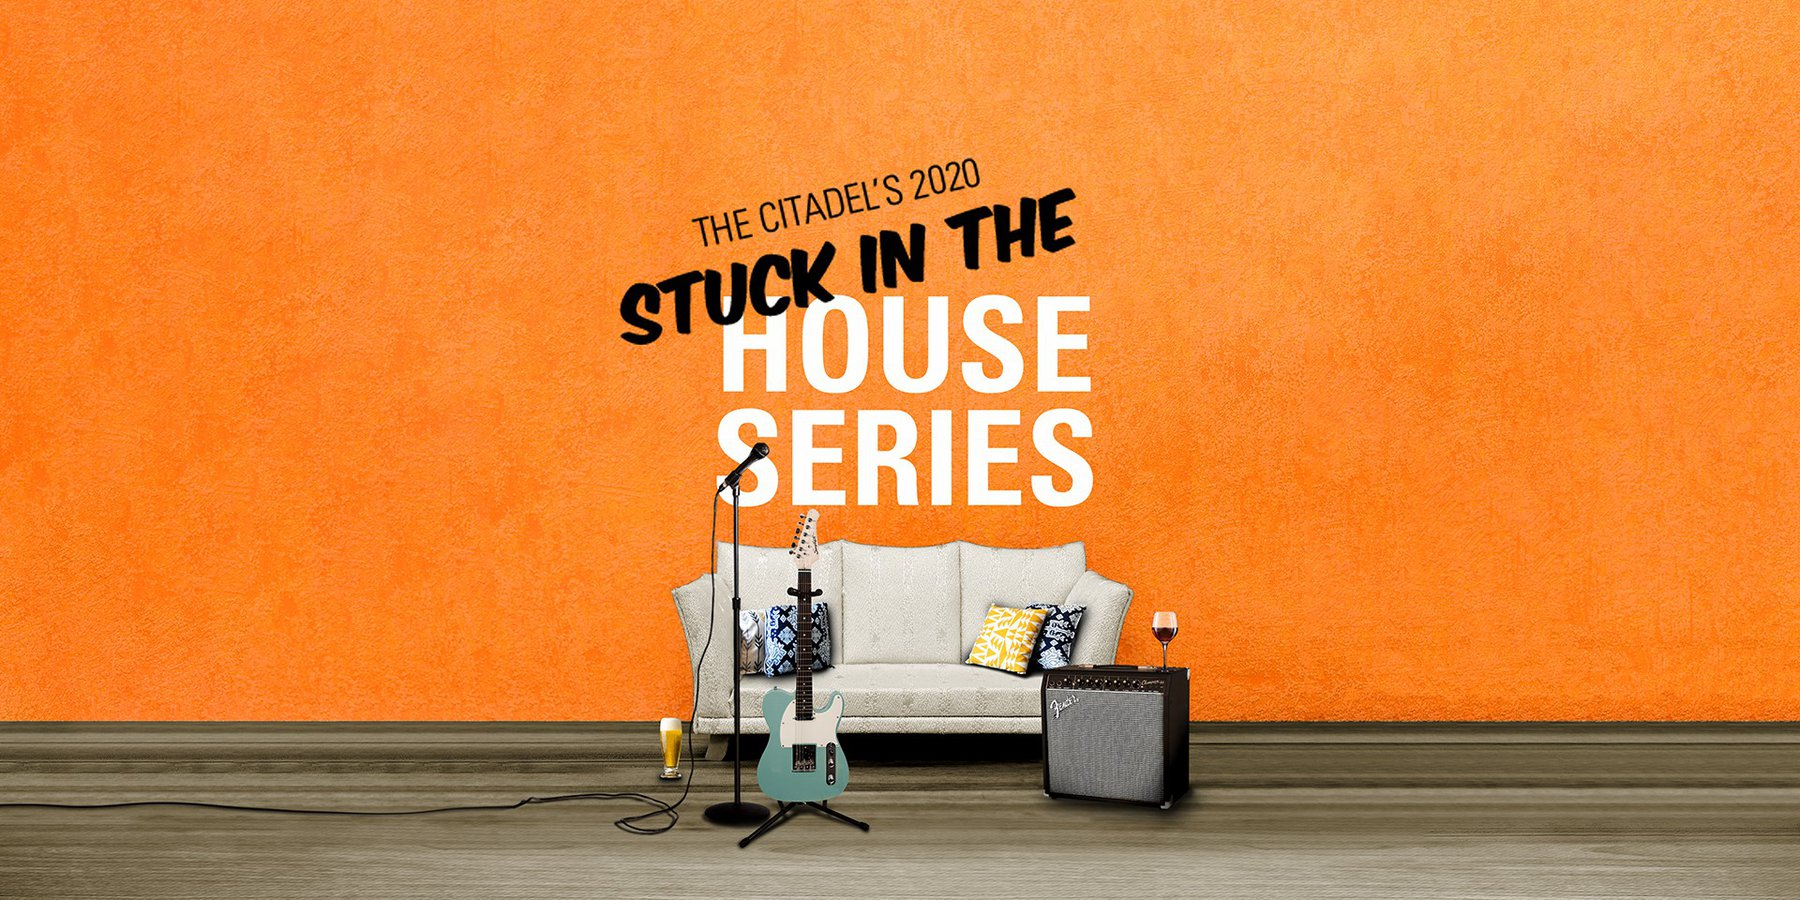 Stuck at home series